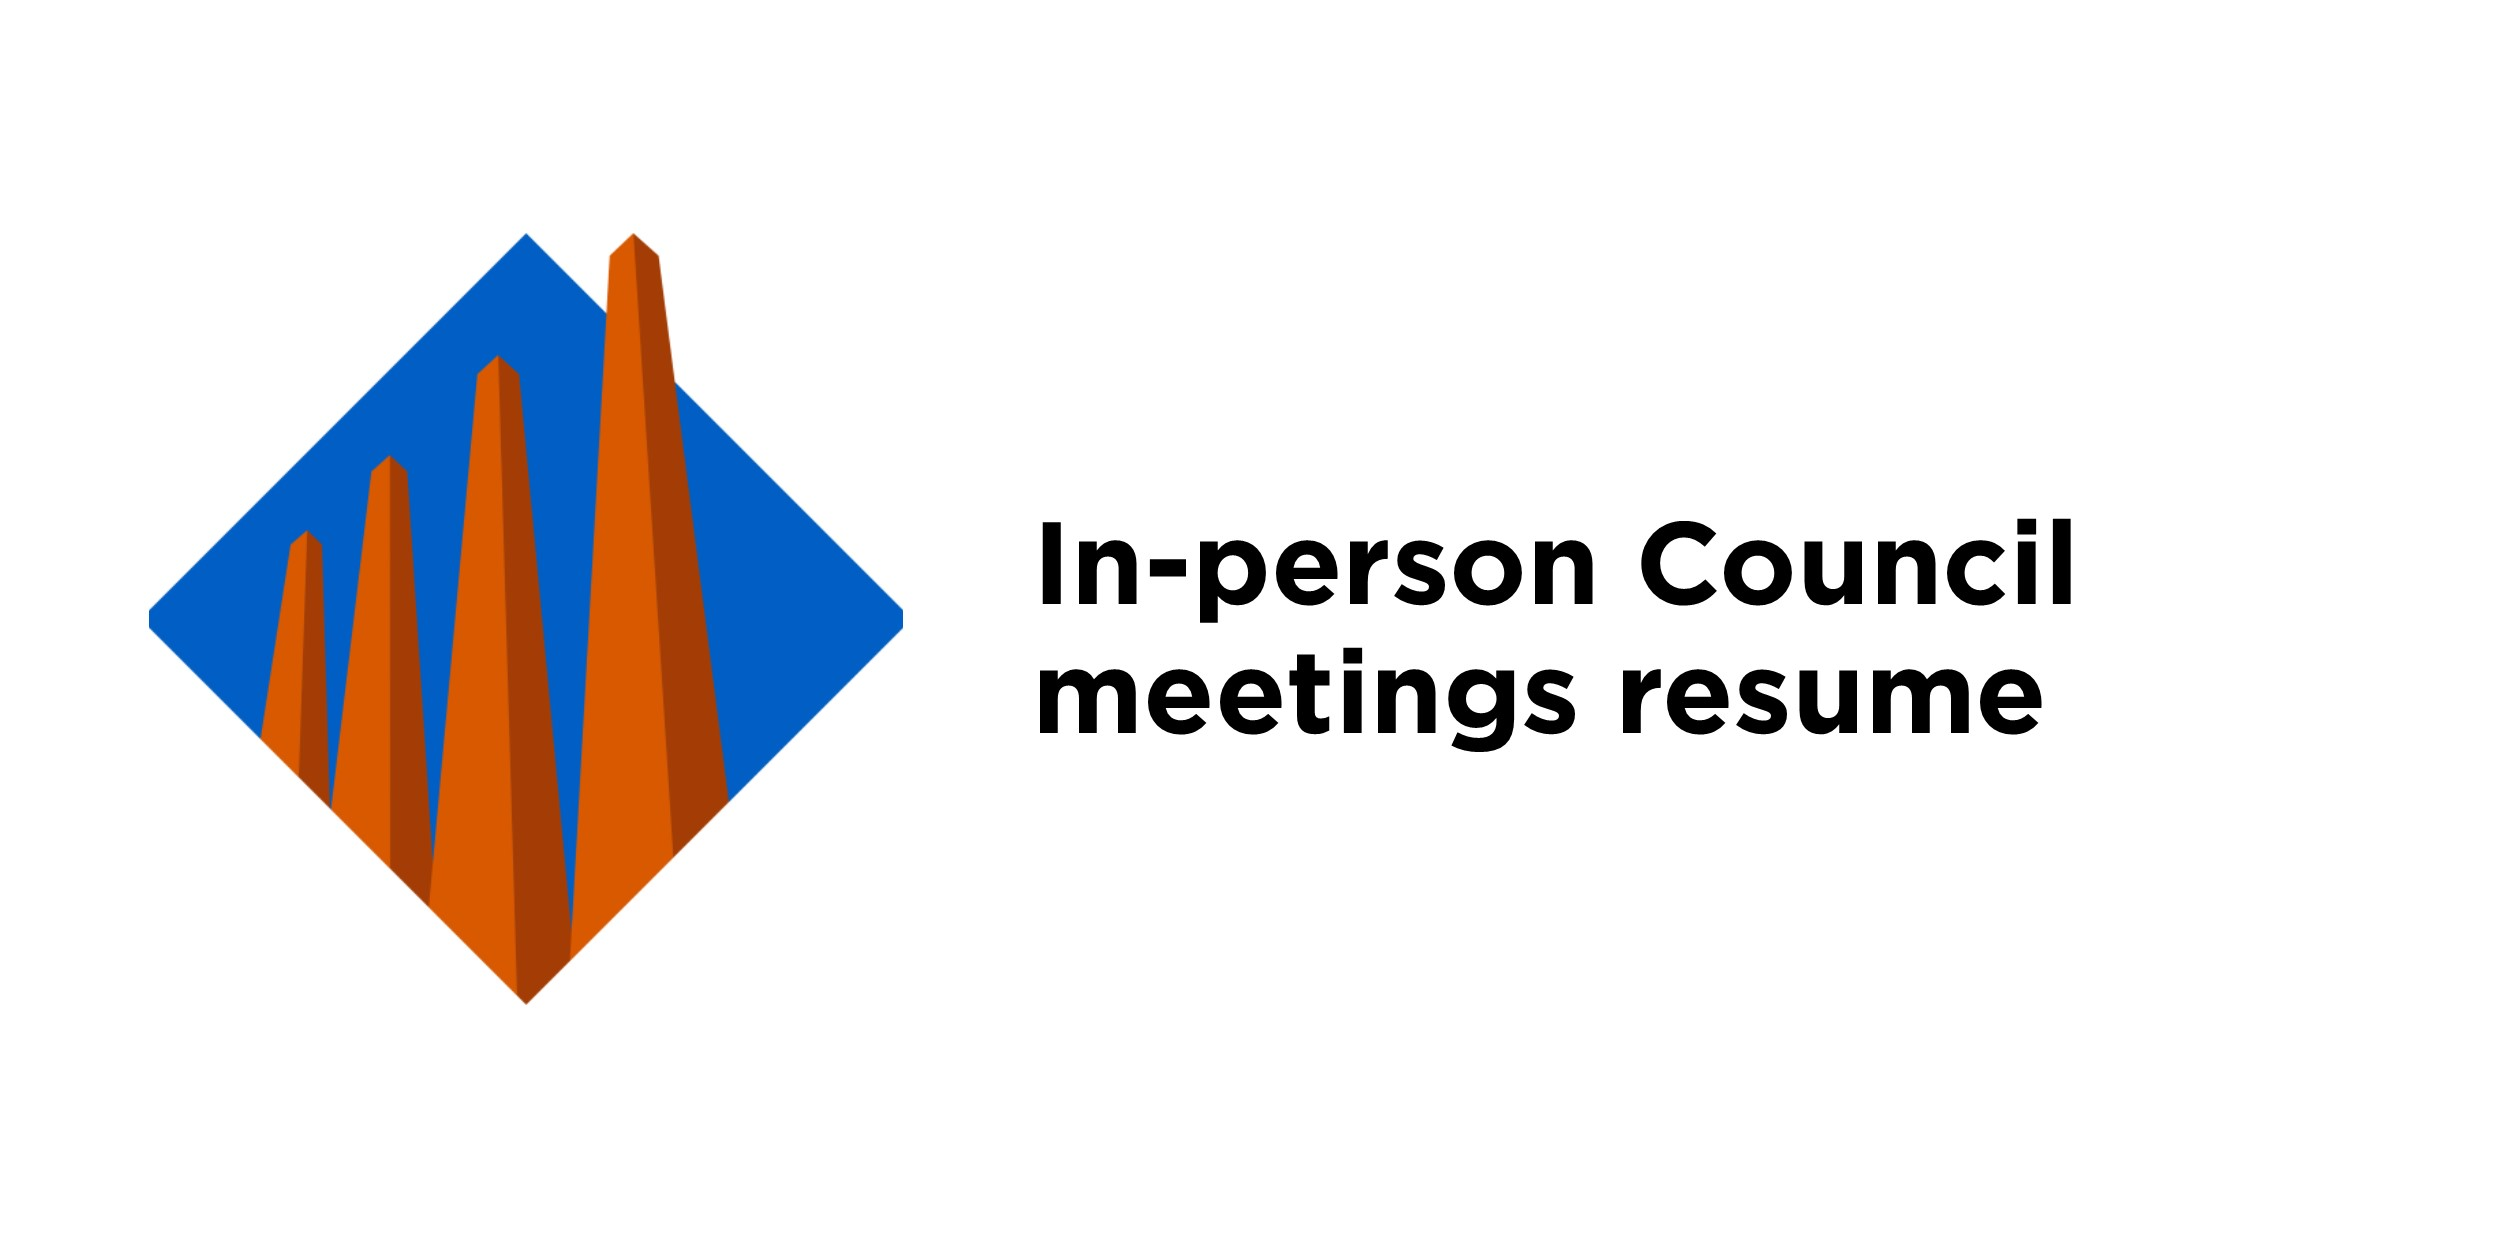 In-person council meetings resume